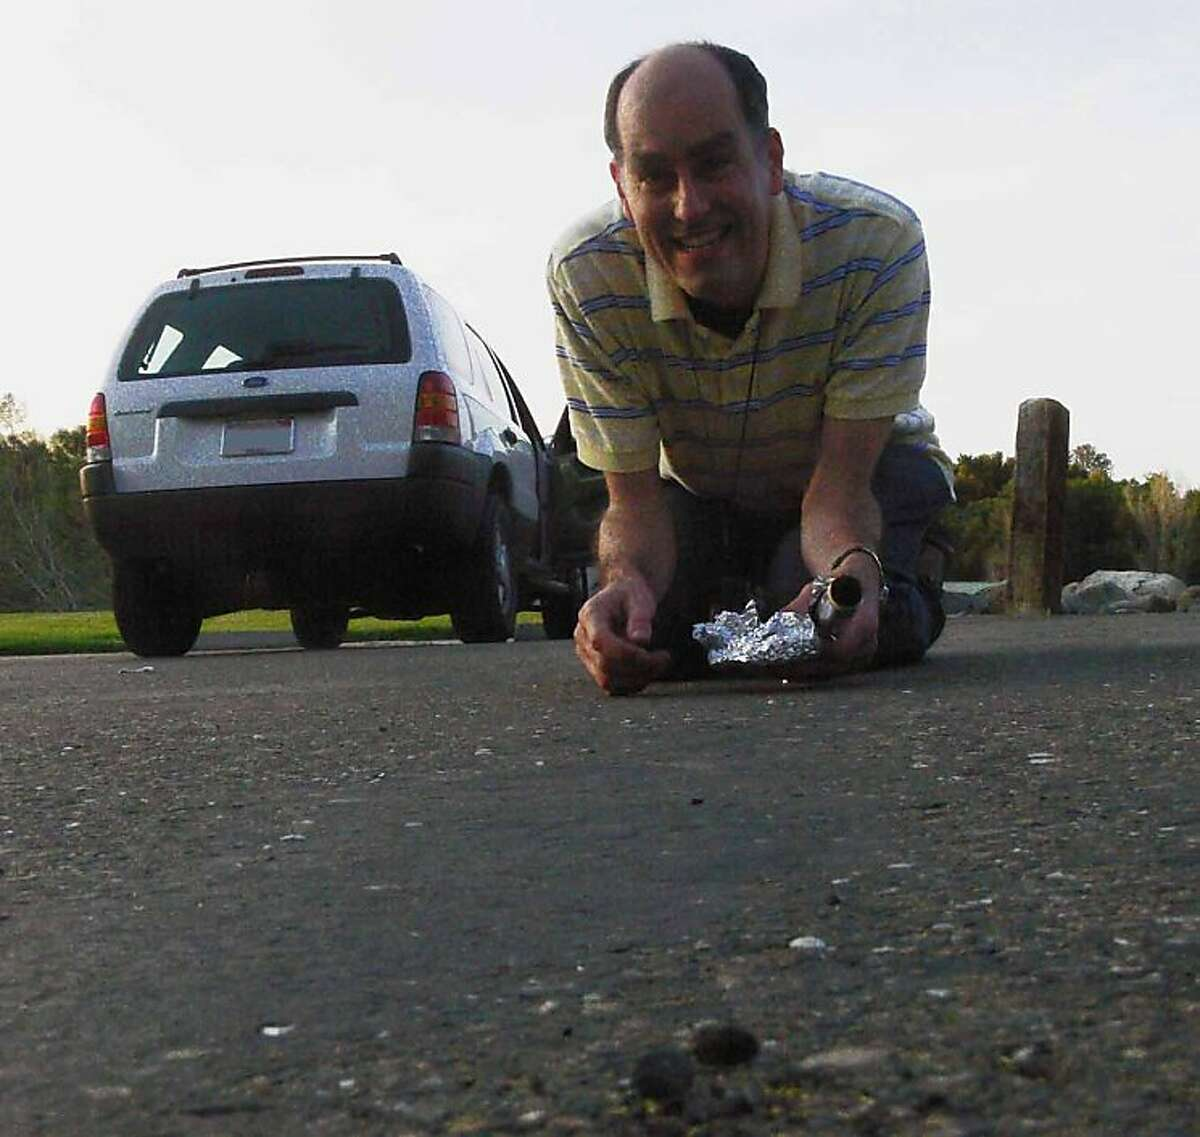 Petrus Jenniskens, the same NASA astronomer who trekked across the Nubian desert four years ago to recover fragments of a small asteroid and bring them home, said Wednesday he had found fragments of the space object on the asphalt parking lot of Henningsen? Lotus Park, located in the small town of Lotus in El Dorado County.